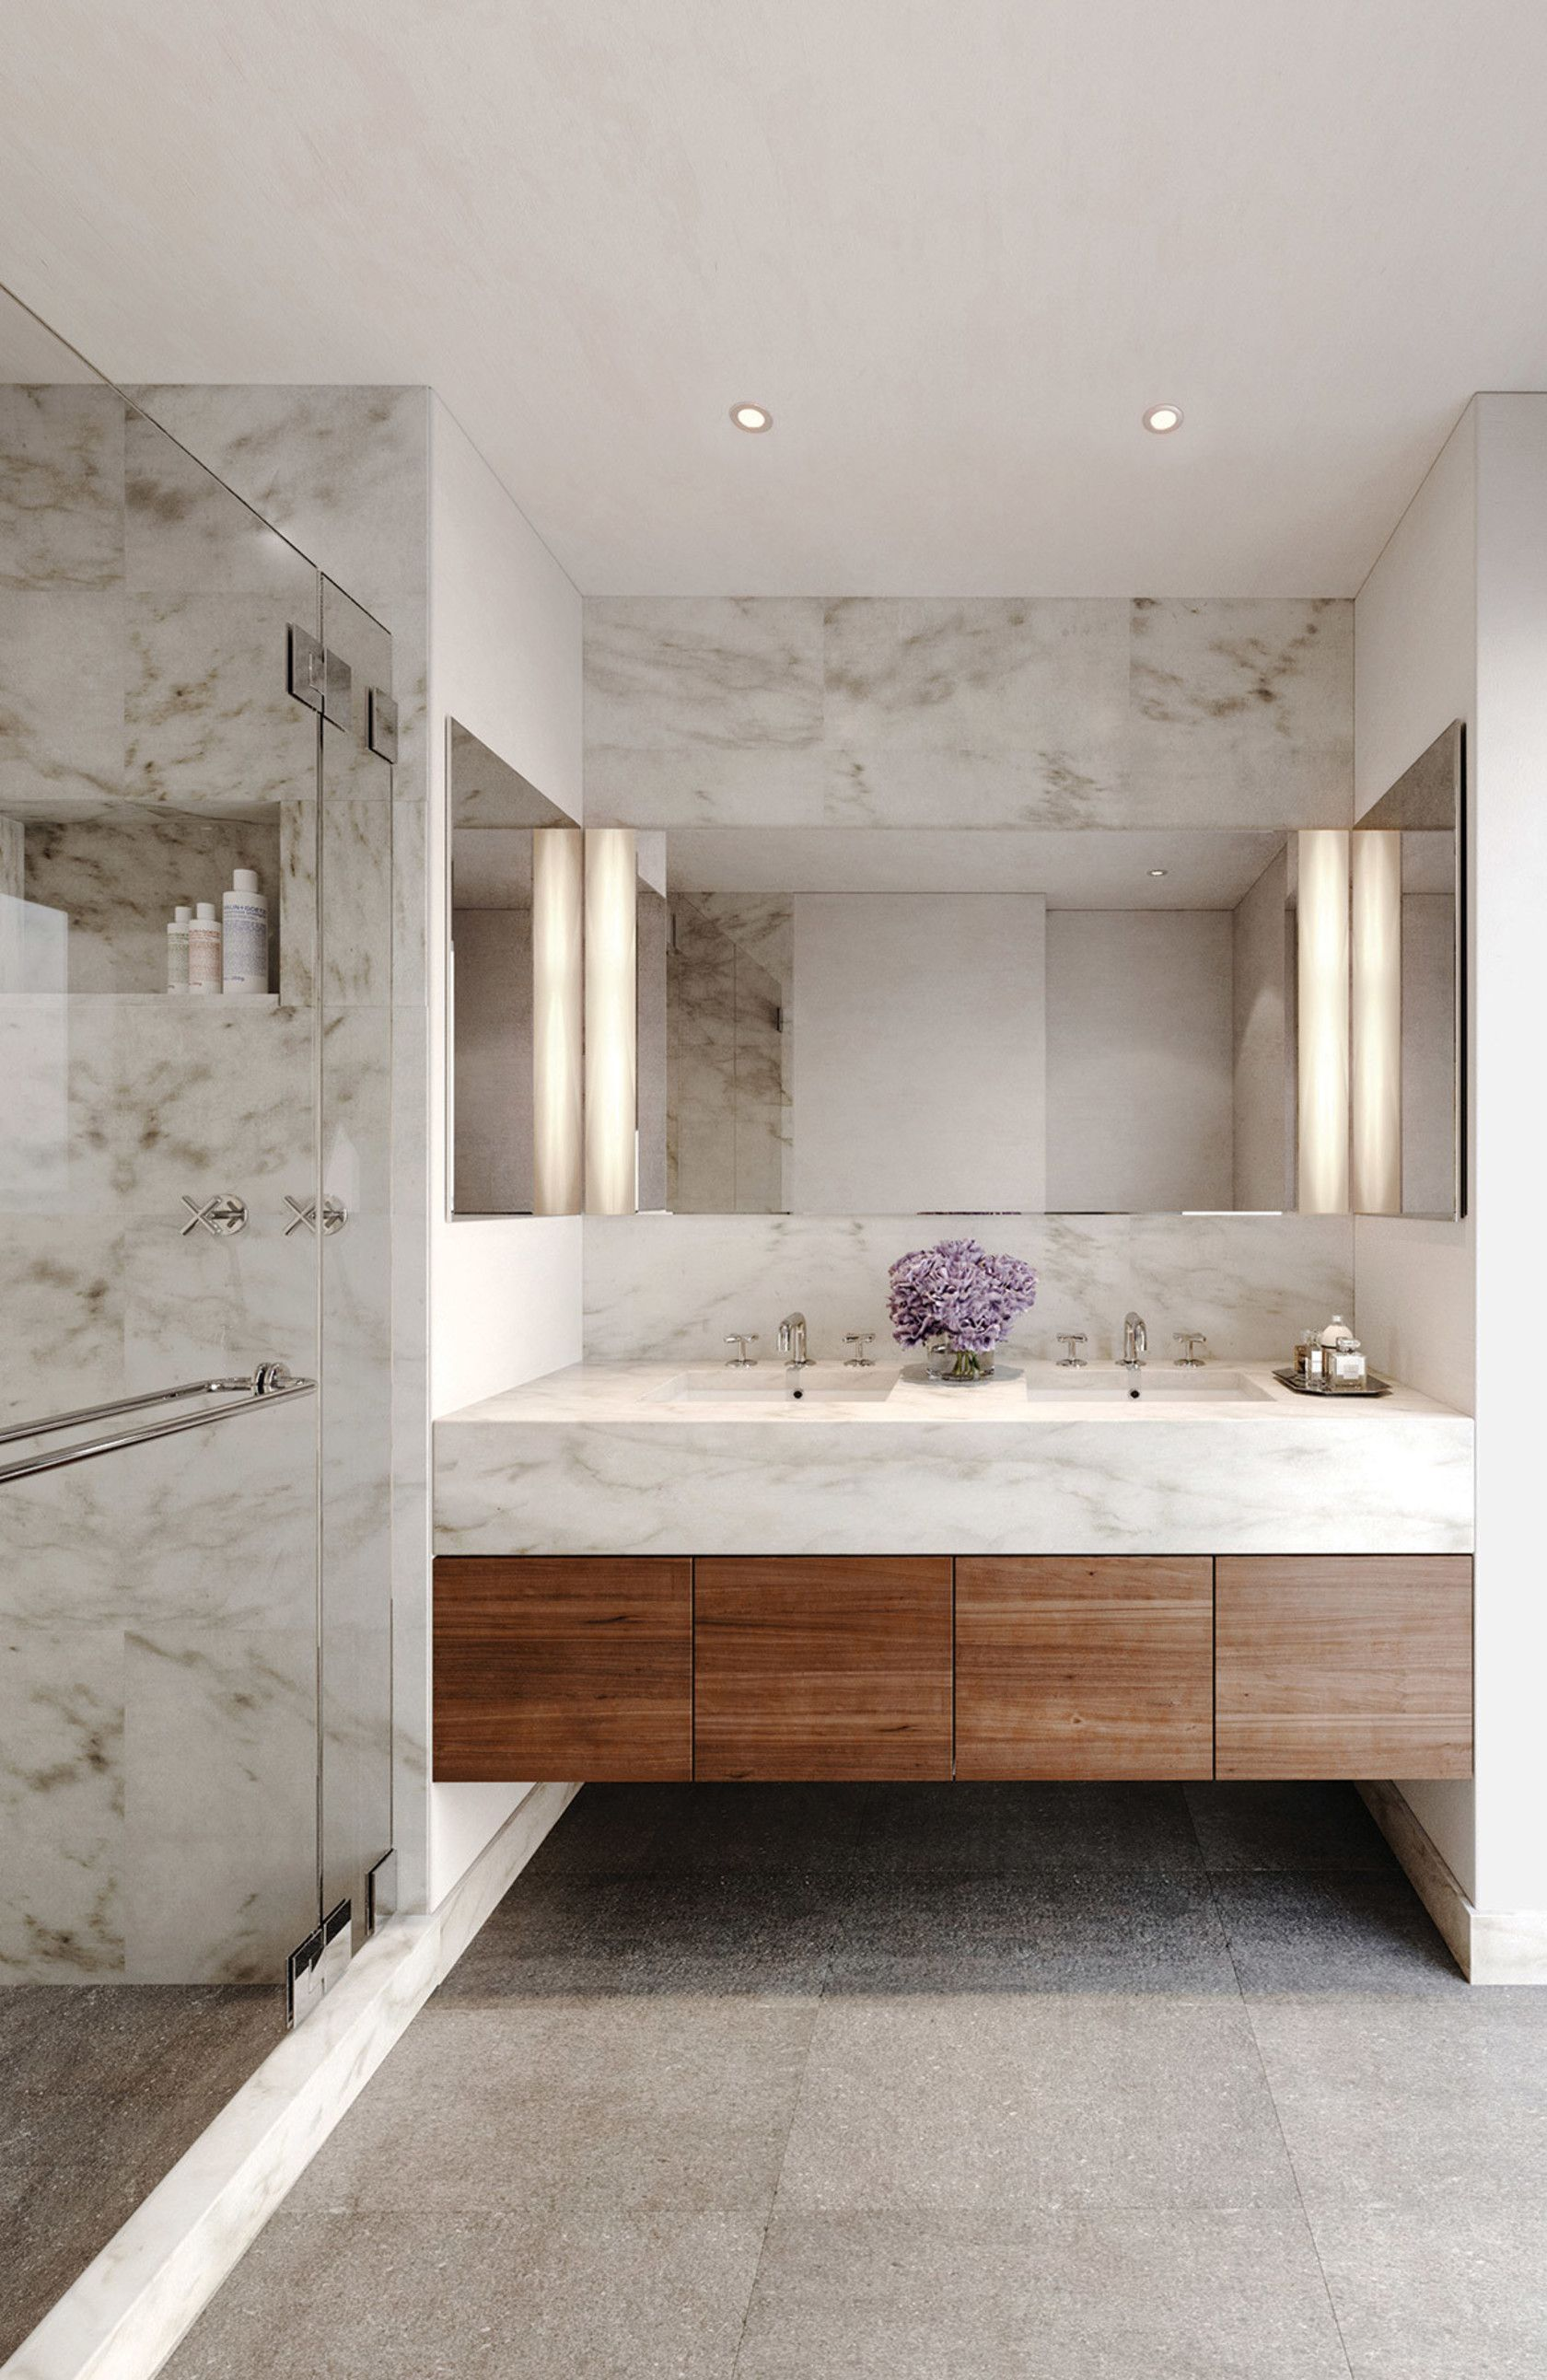 Design Megillah Bathroom Redesign For Under 200: Contemporary Design Residences